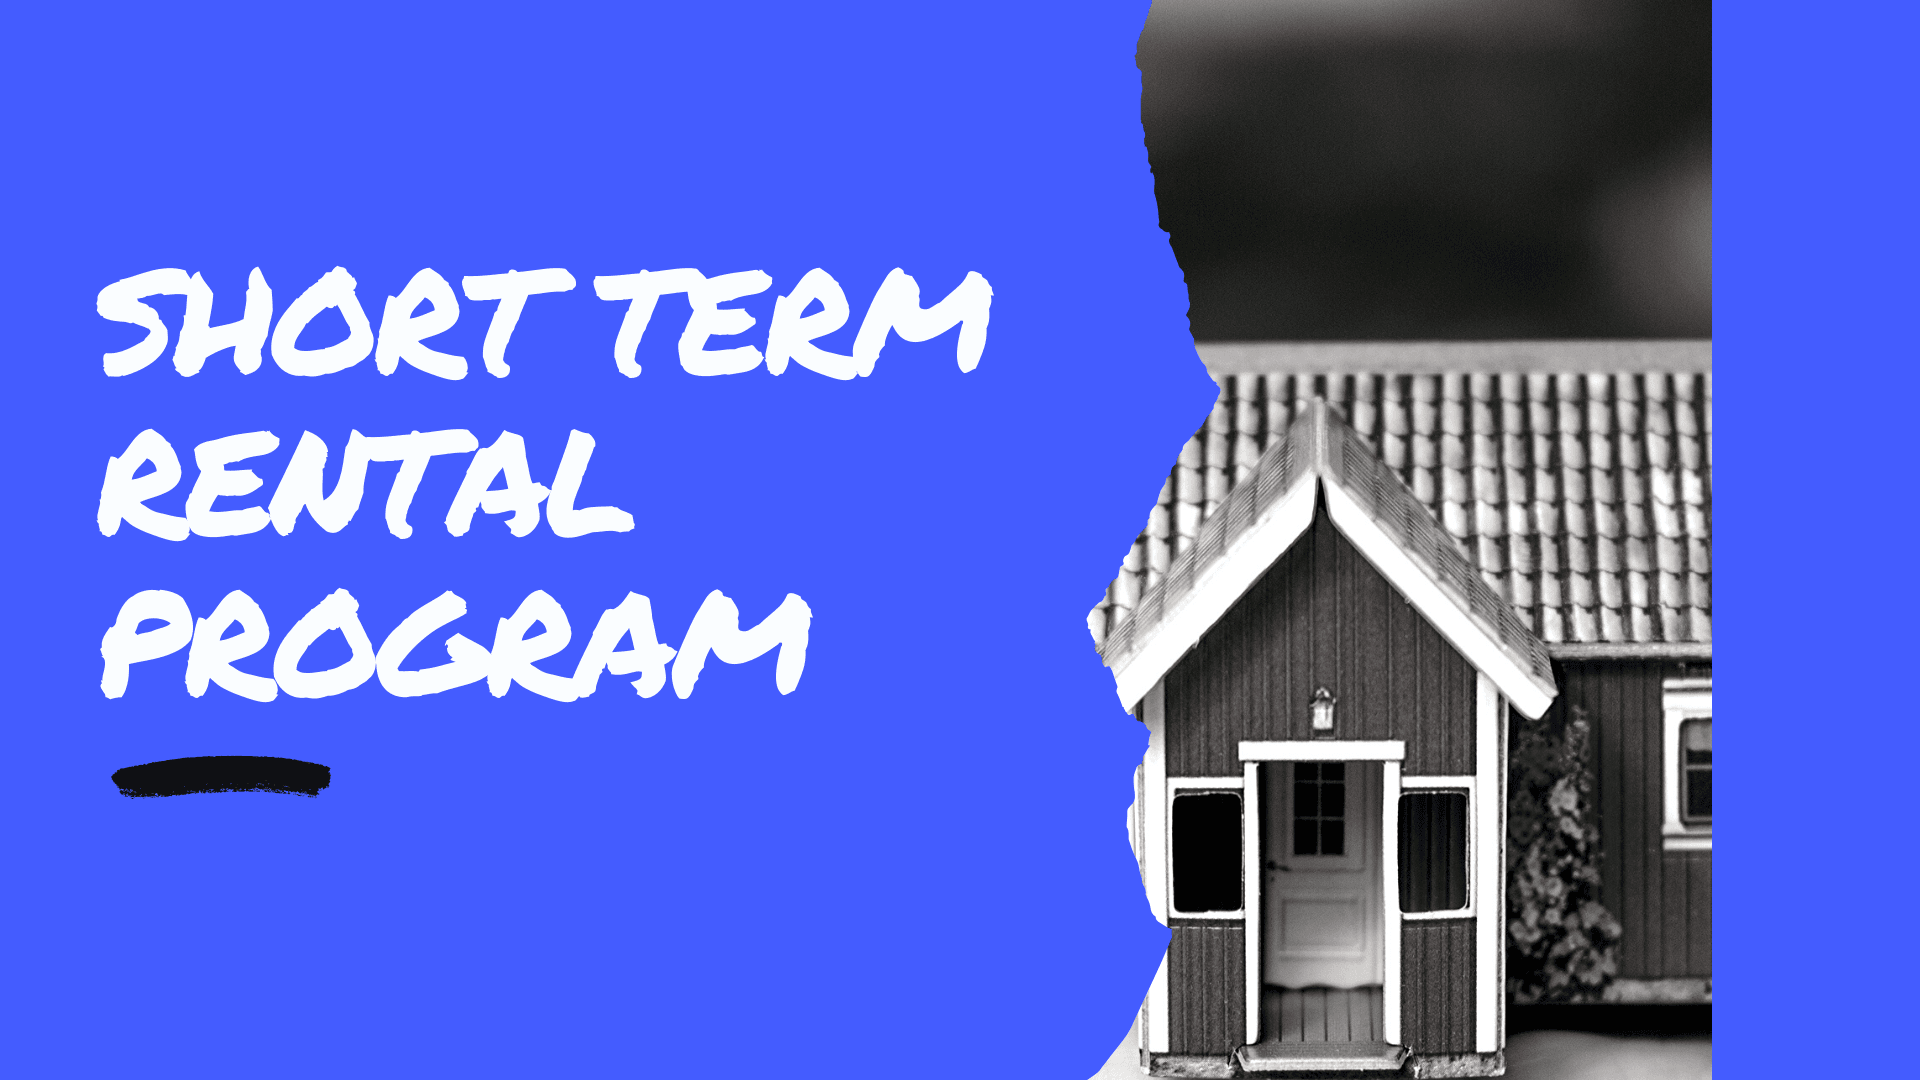 Short term rental program